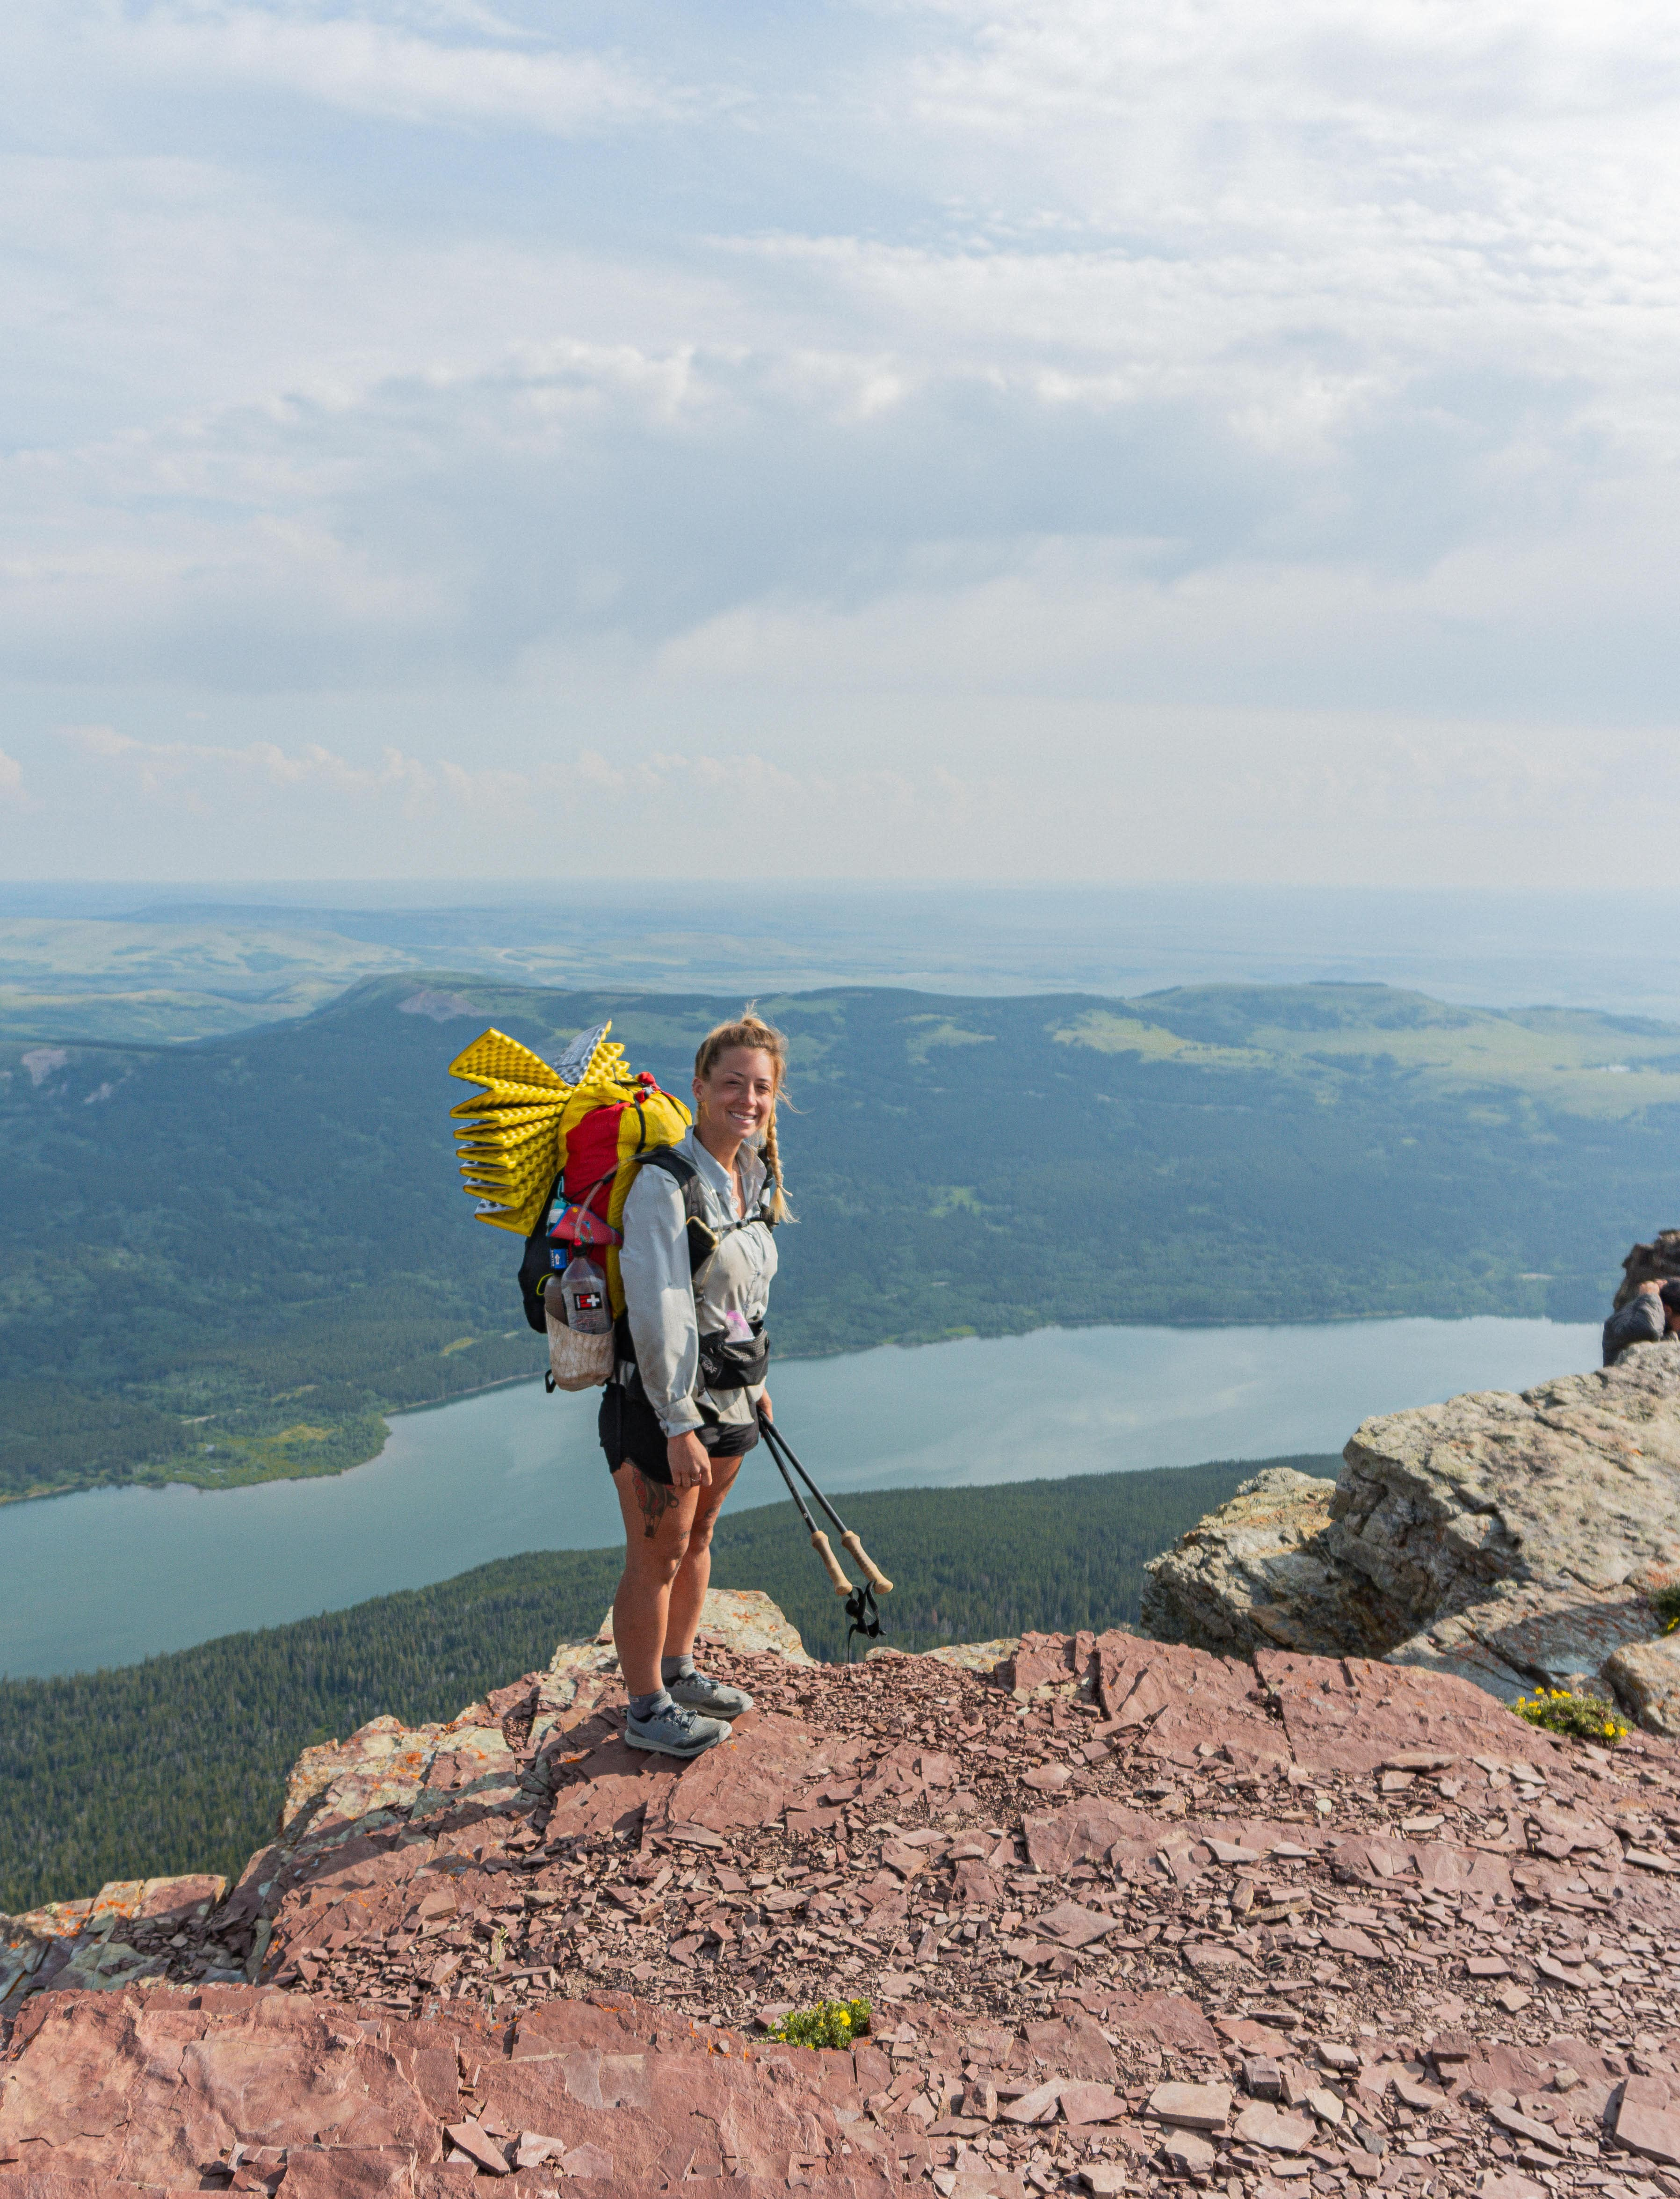 Woman takes in a view while backpacking